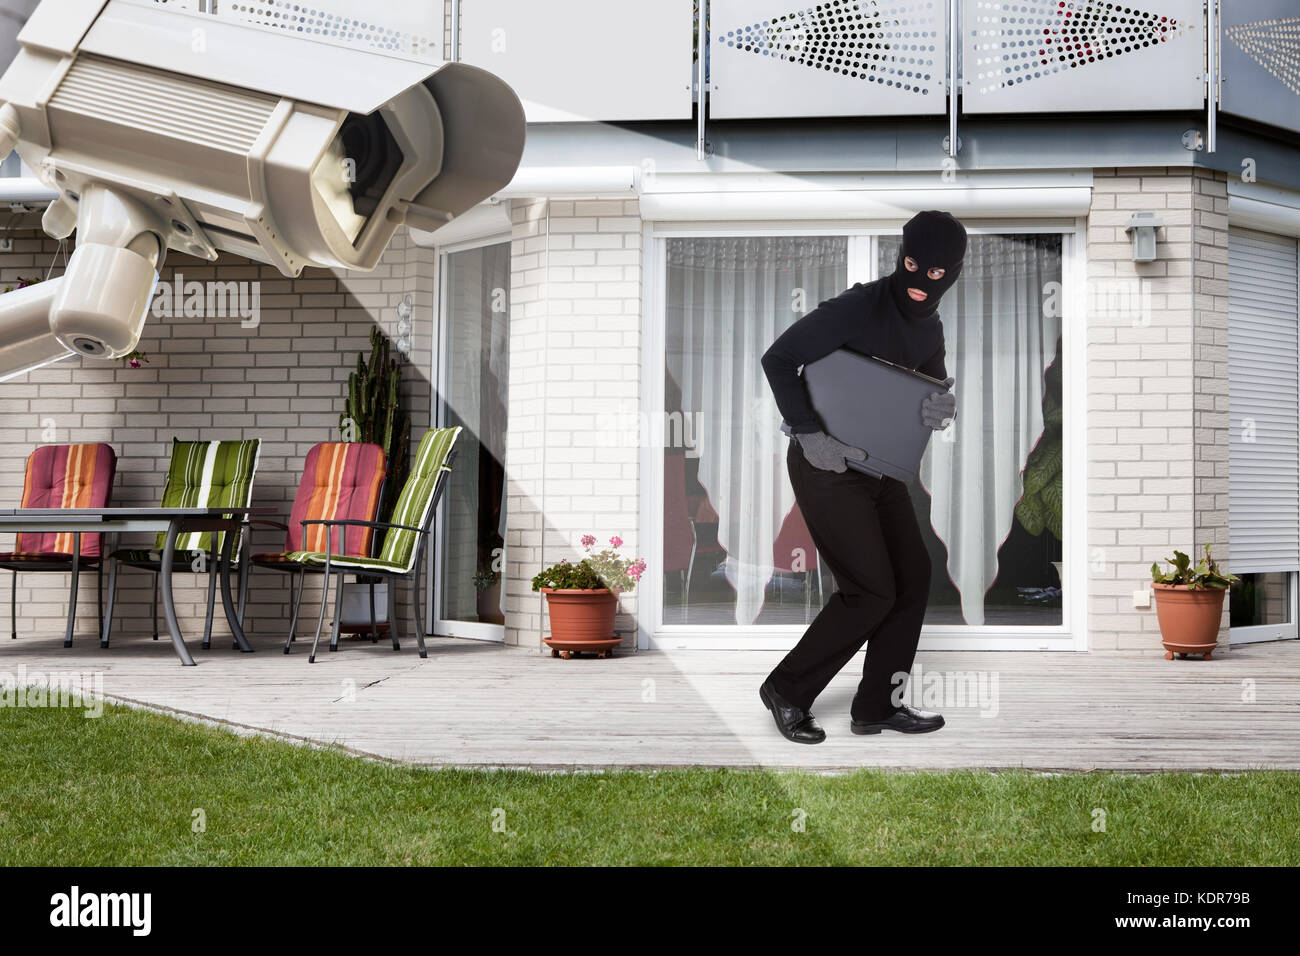 Security Camera Capturing Thief Wearing Balaclava Running With Laptop Outside The House - Stock Image